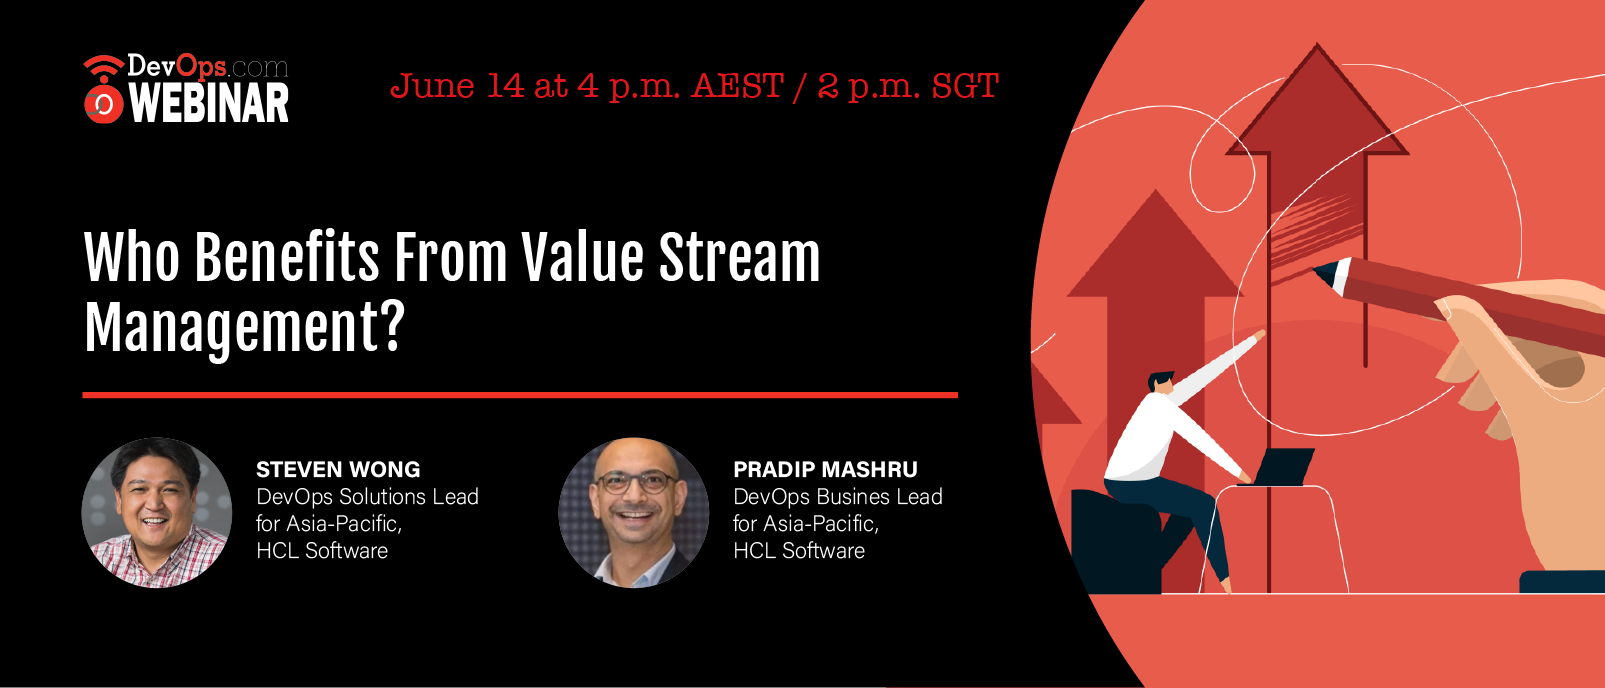 Who Benefits From Value Stream Management?